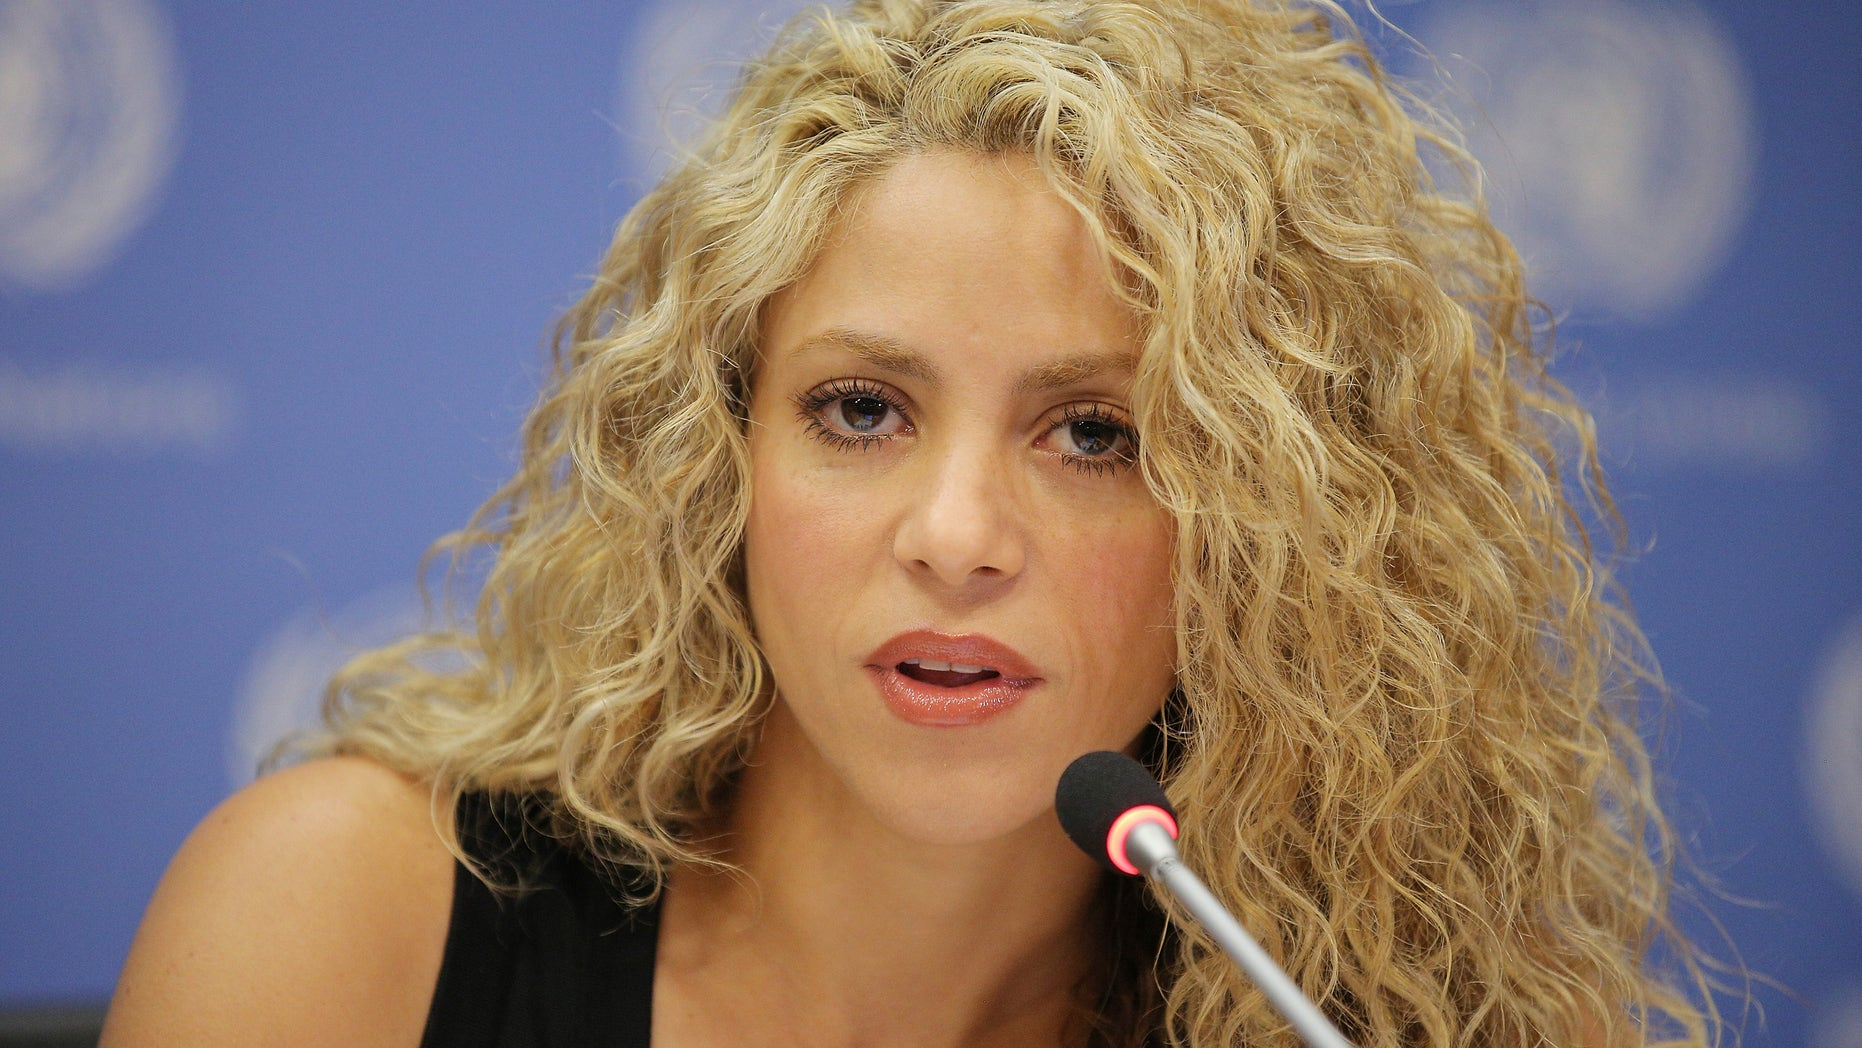 Shakira during a press conference on September 22, 2015 in New York City.